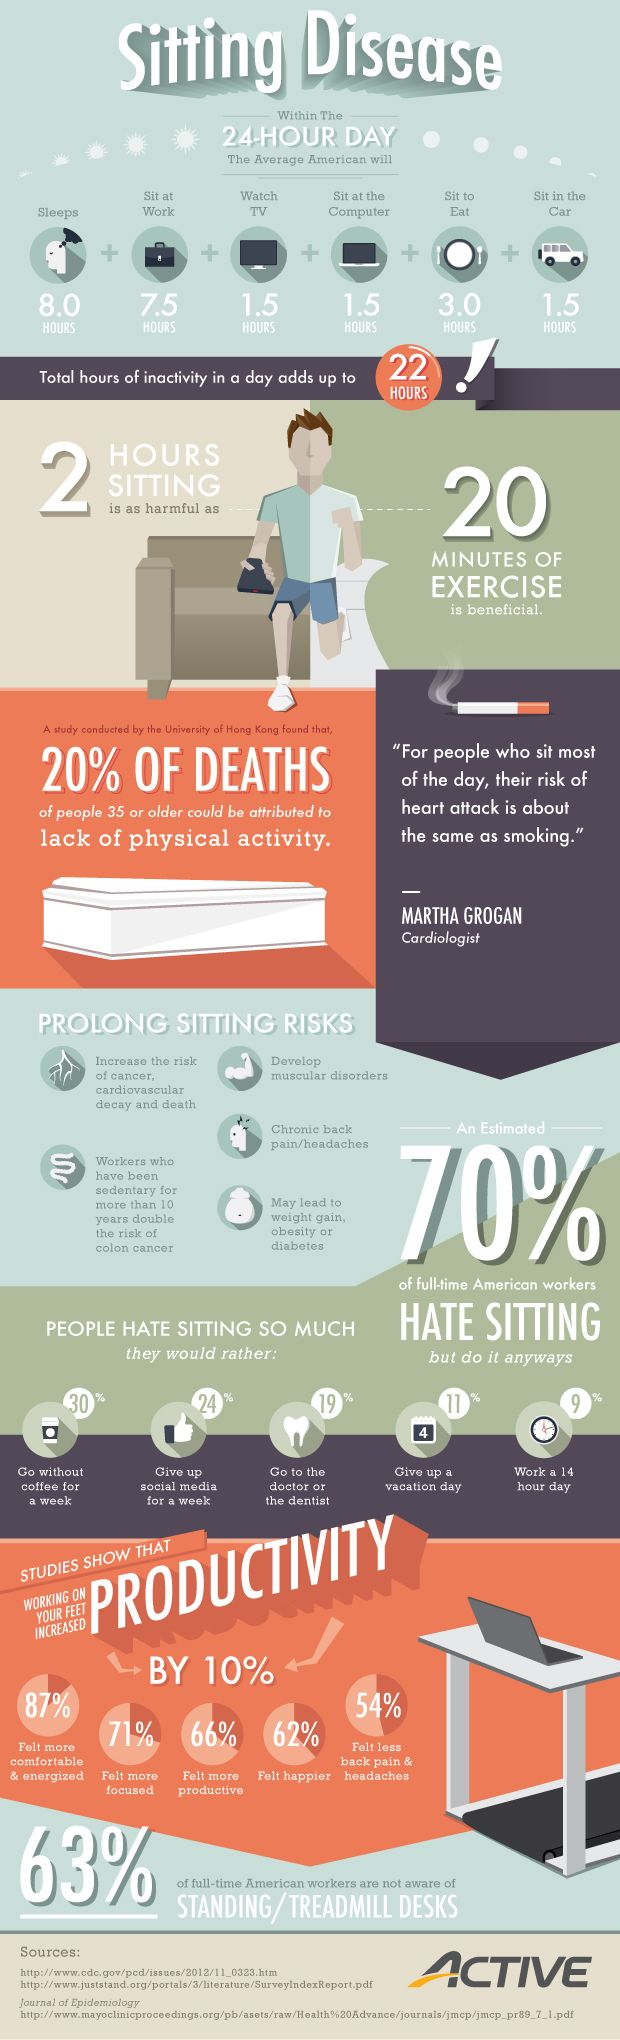 Infographic: How Sitting Too Much Can Harm Your Health